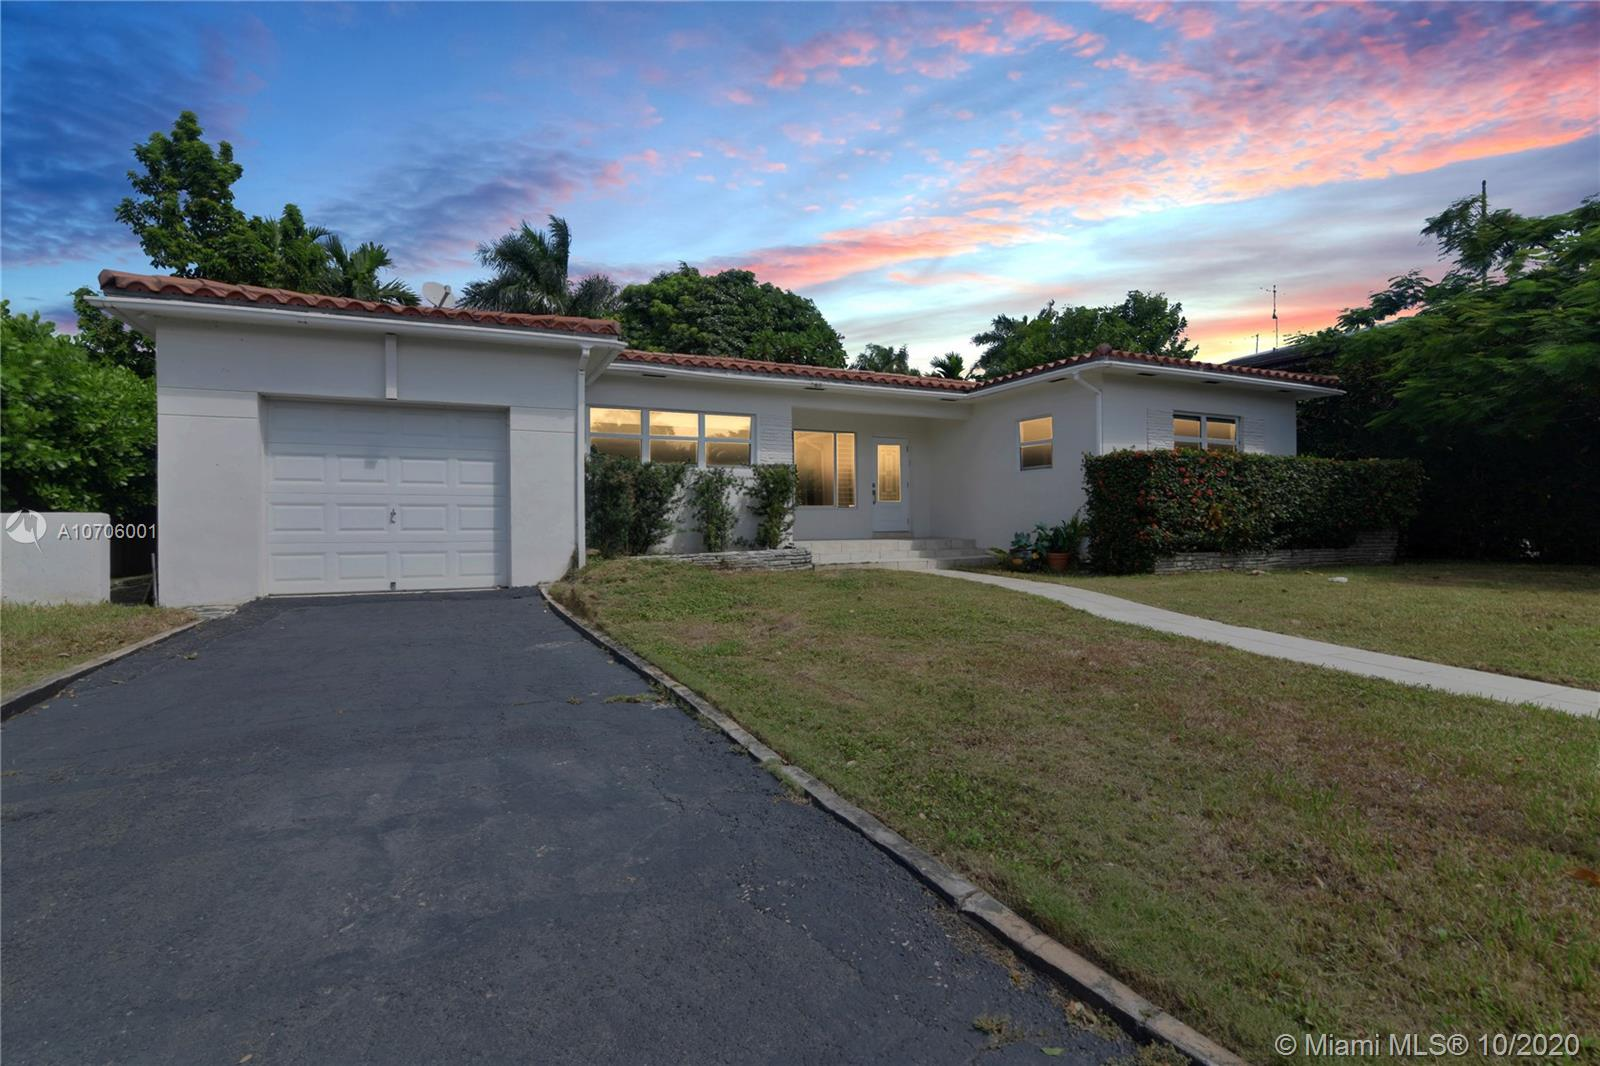 Beautiful recently updated home in exclusive Bay Harbor Islands. Remodeled bathrooms and kitchen. 3 Bedroom, 2 Bath, and a HUGE backyard with delicious mango, avocado, and papaya trees.